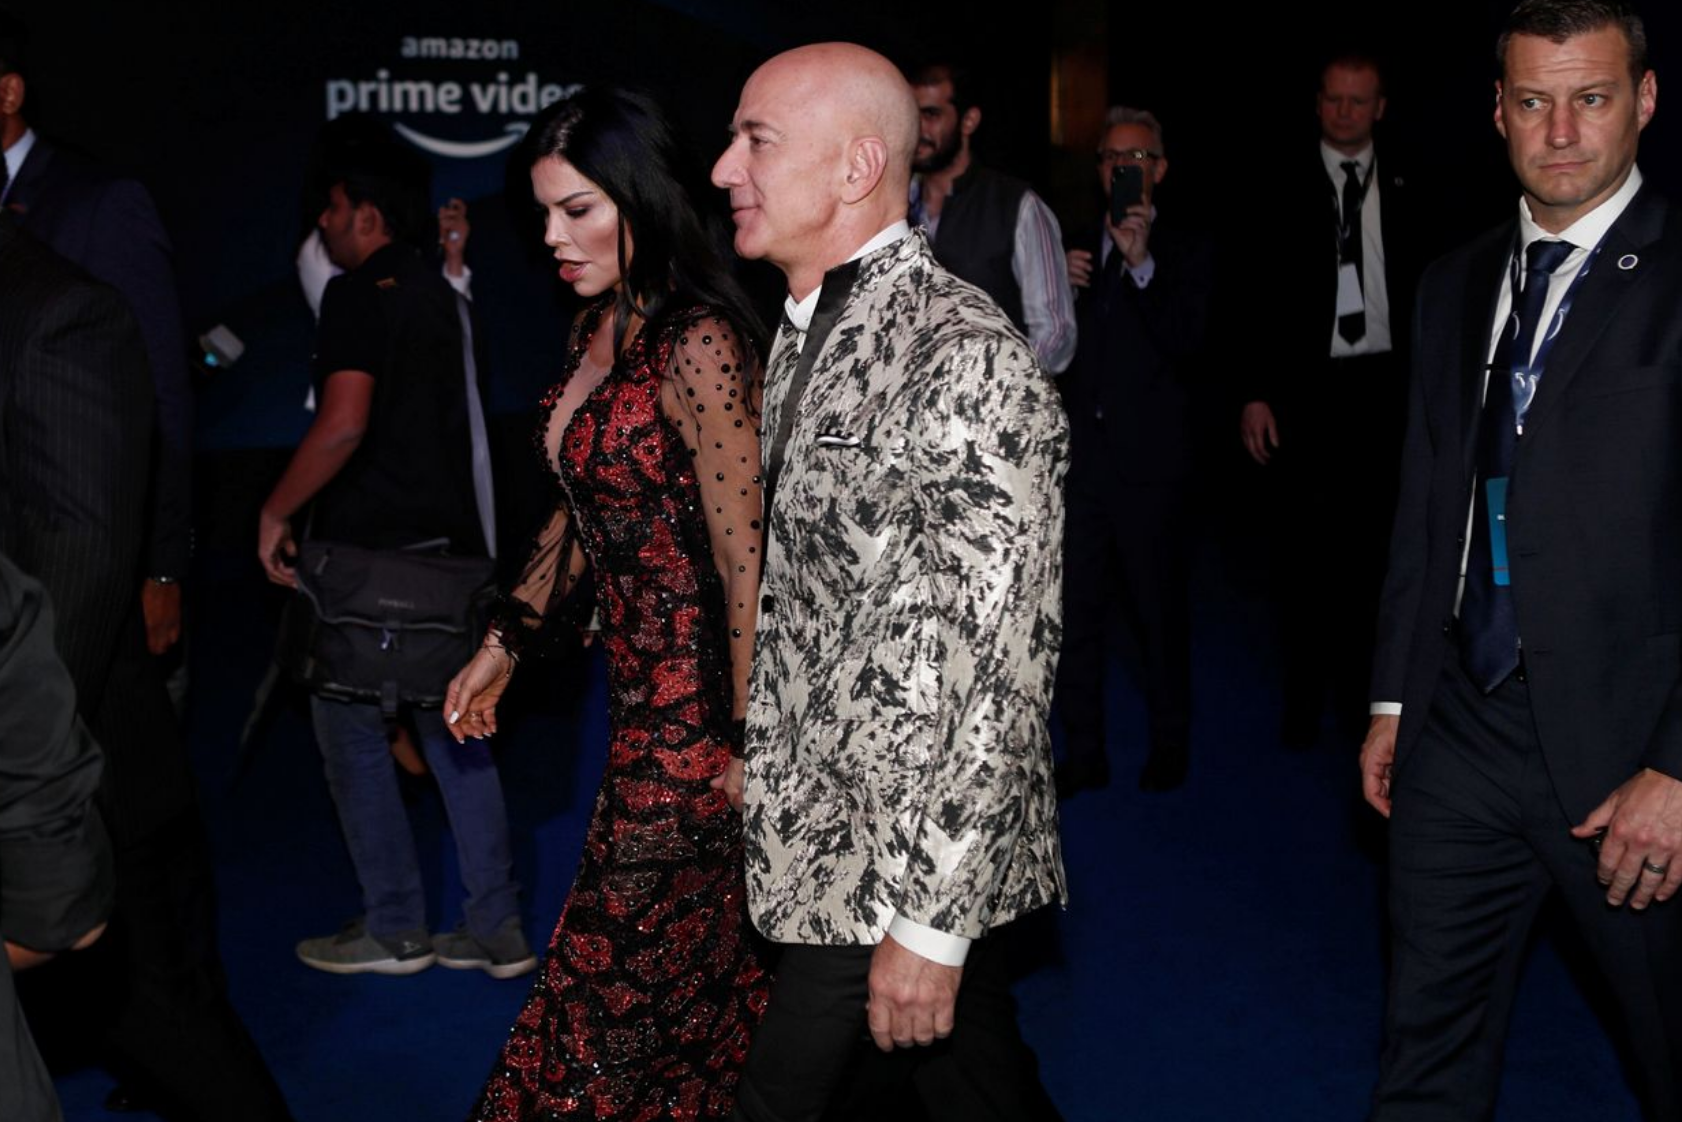 Bezos' Phone Allegedly Hacked By Account Associated With Crown Prince